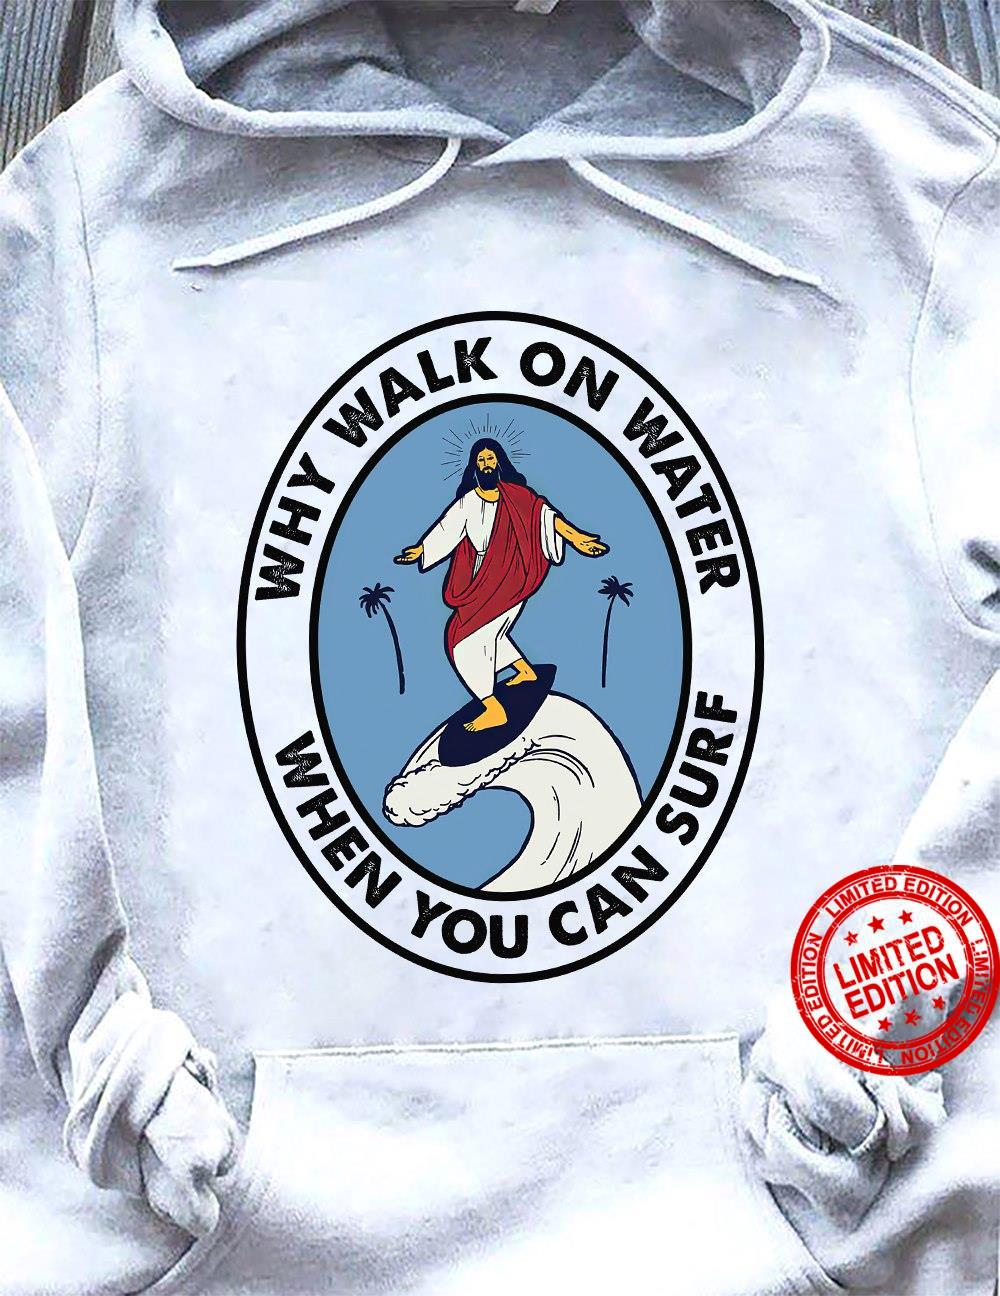 Why Walk On Water When You Can Surf Shirt